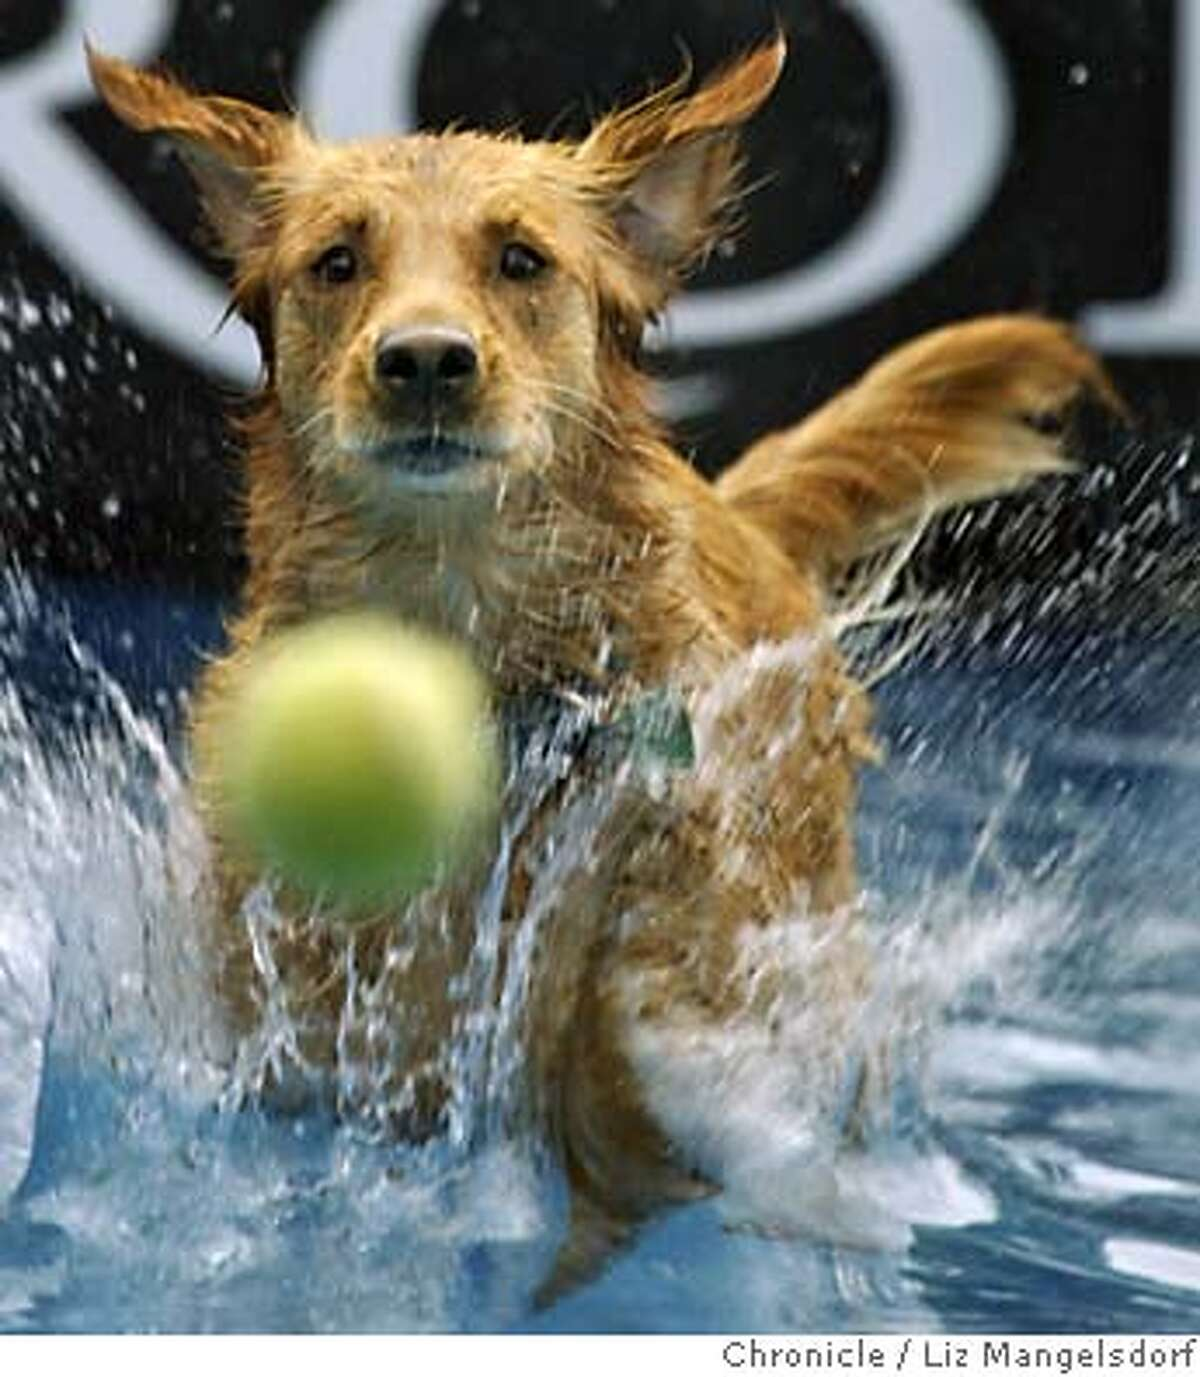 No. 2 in SF: Golden retrievers Sierra, a 3-year-old Golden Retriever, keeps her eye on the ball as she practices diving into the pool set up for a diving event at Golden Gate Park.